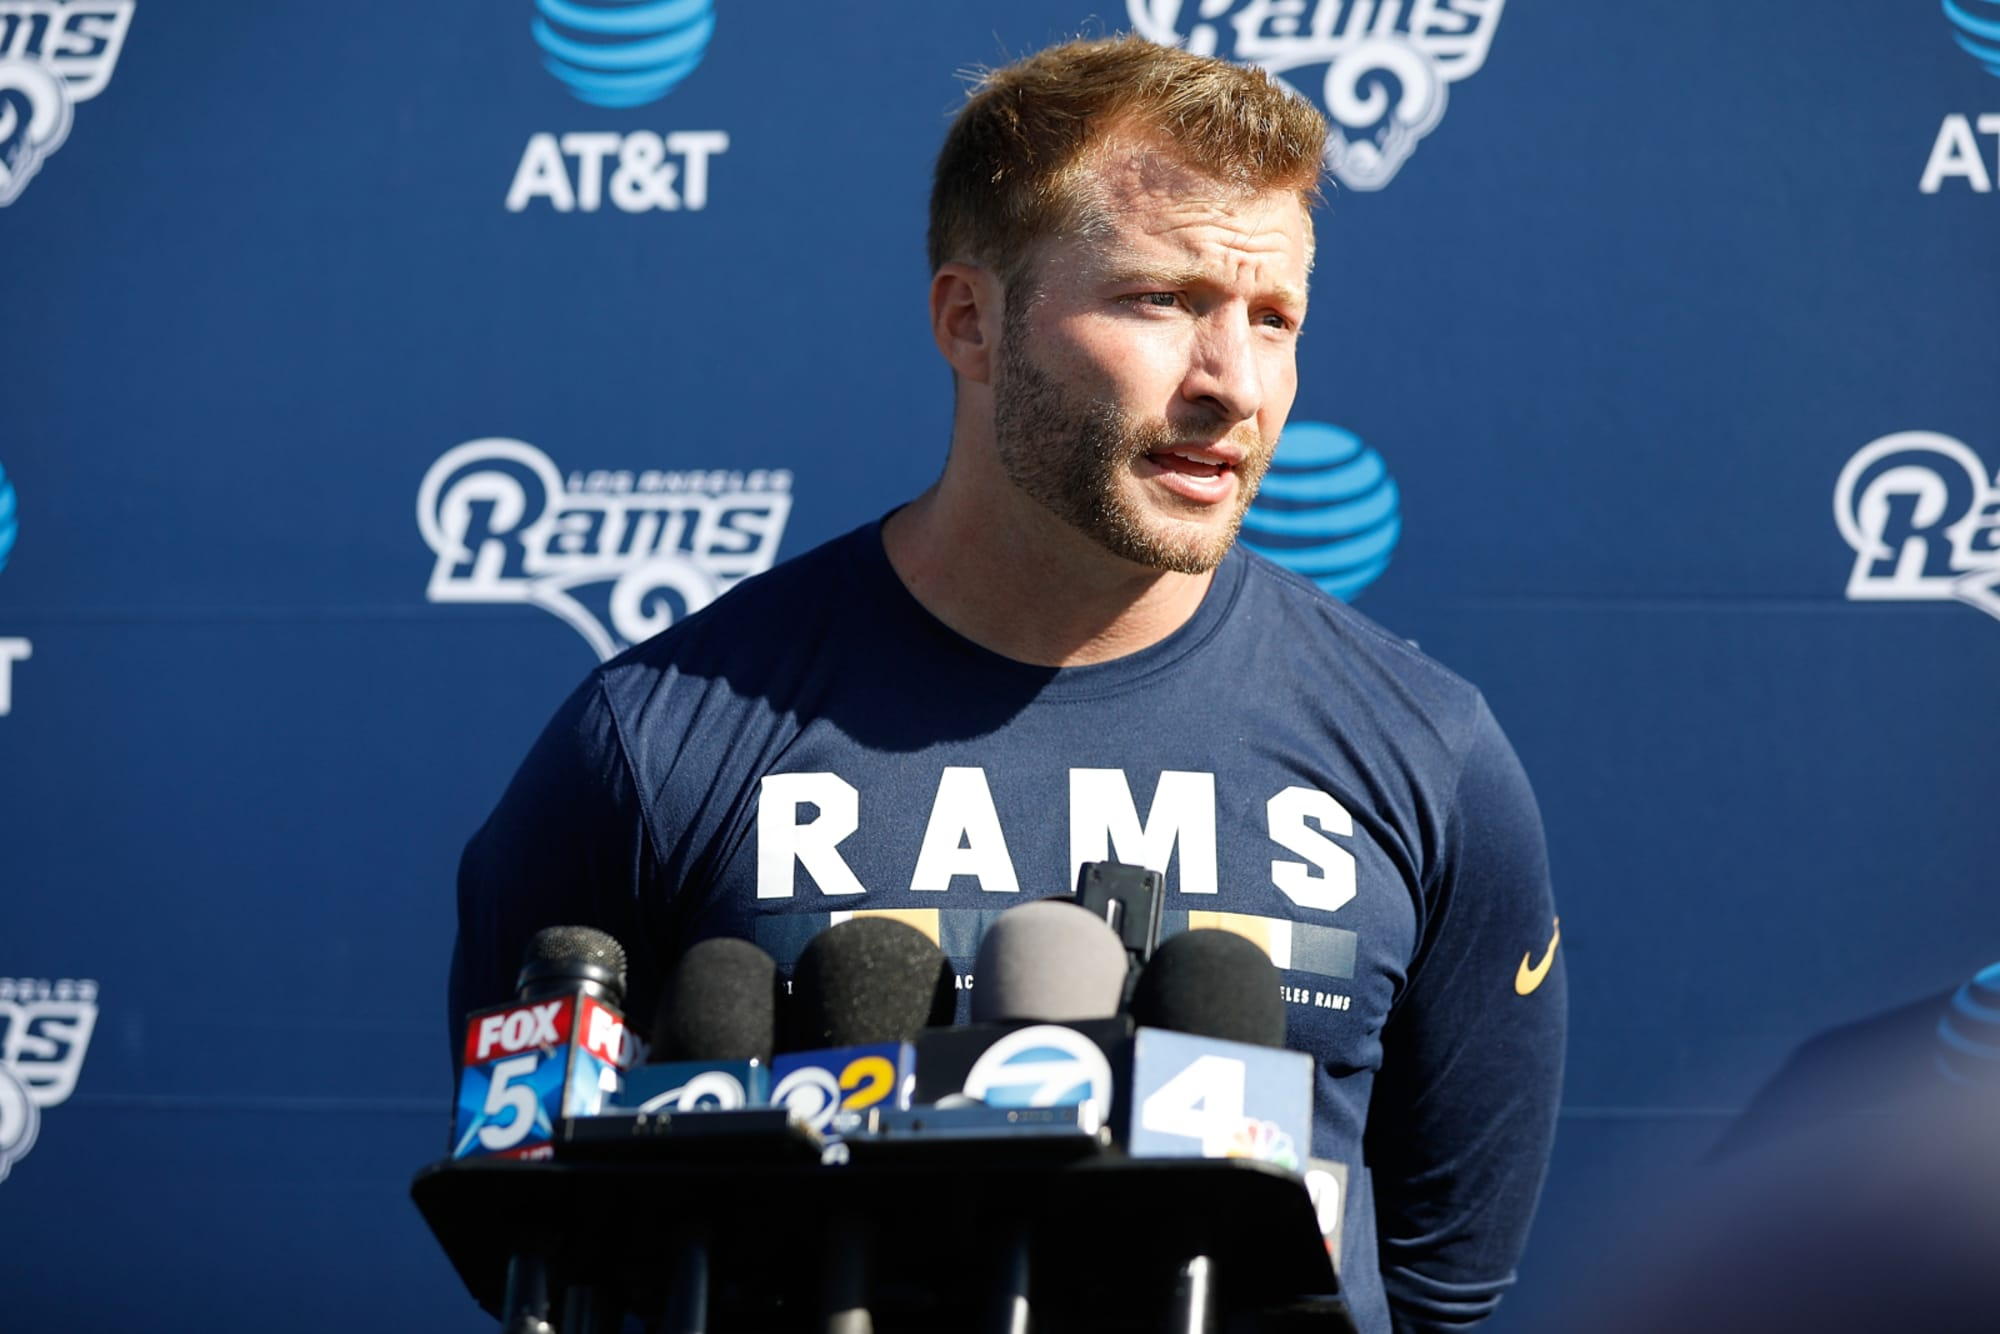 LA Rams News: COVID-19 challenges players and team